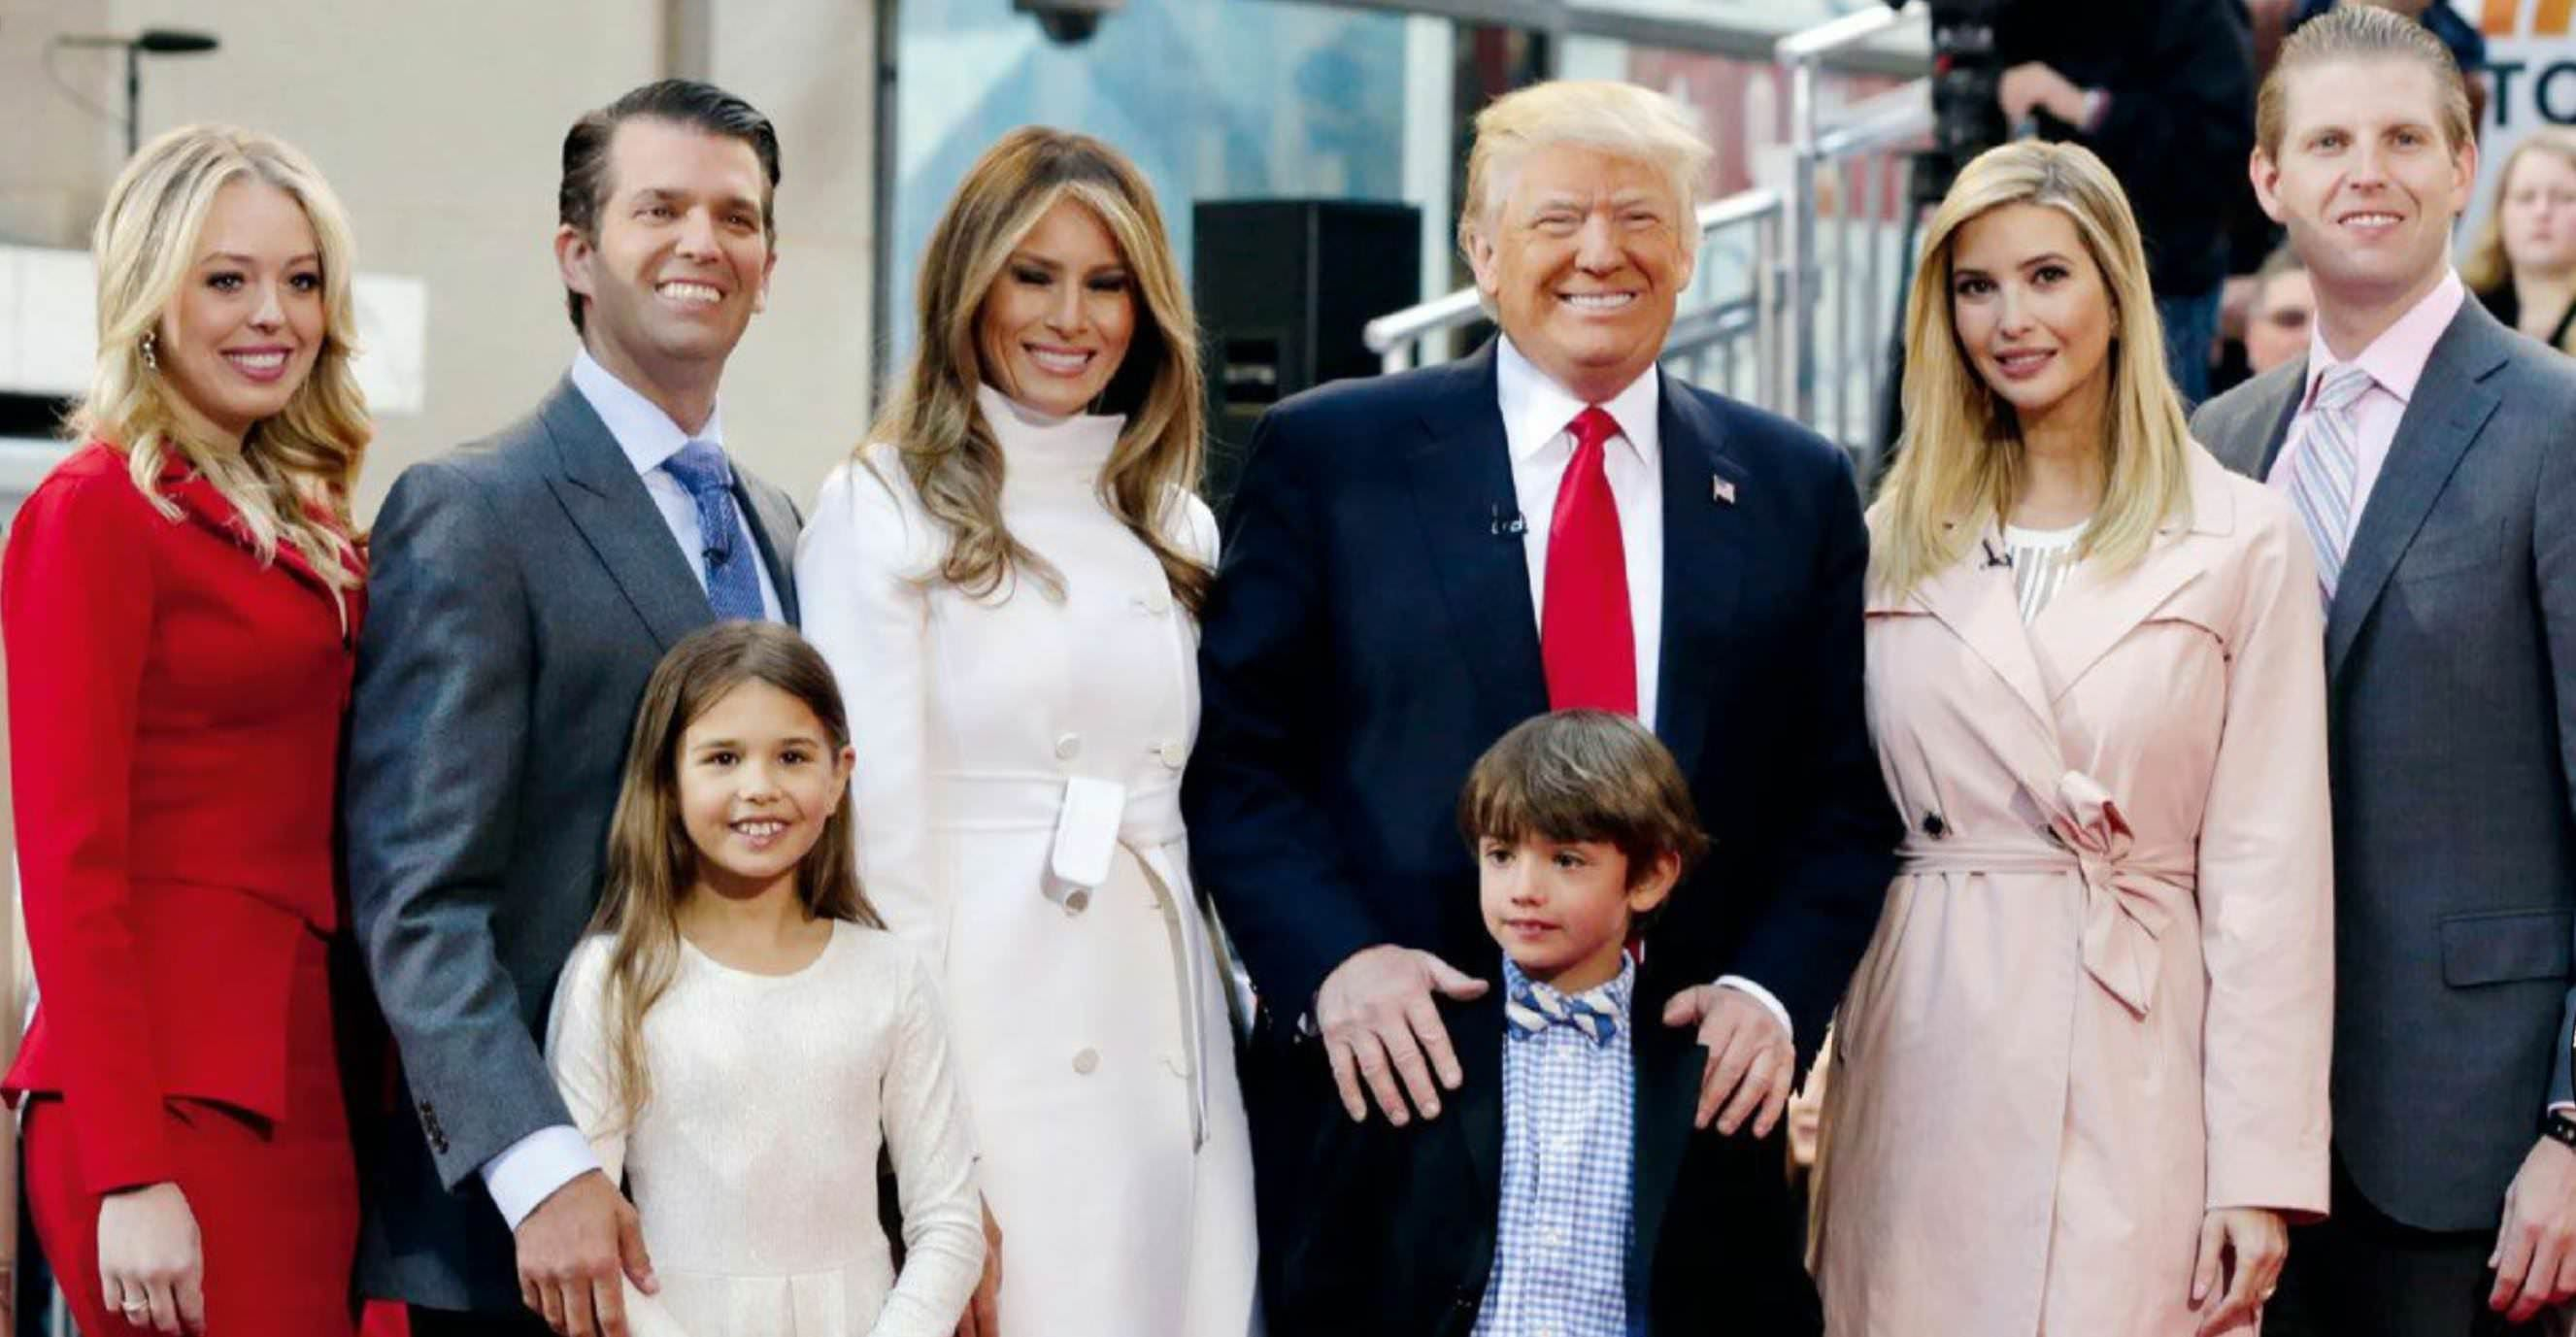 Trump Family Birthright Citizenship